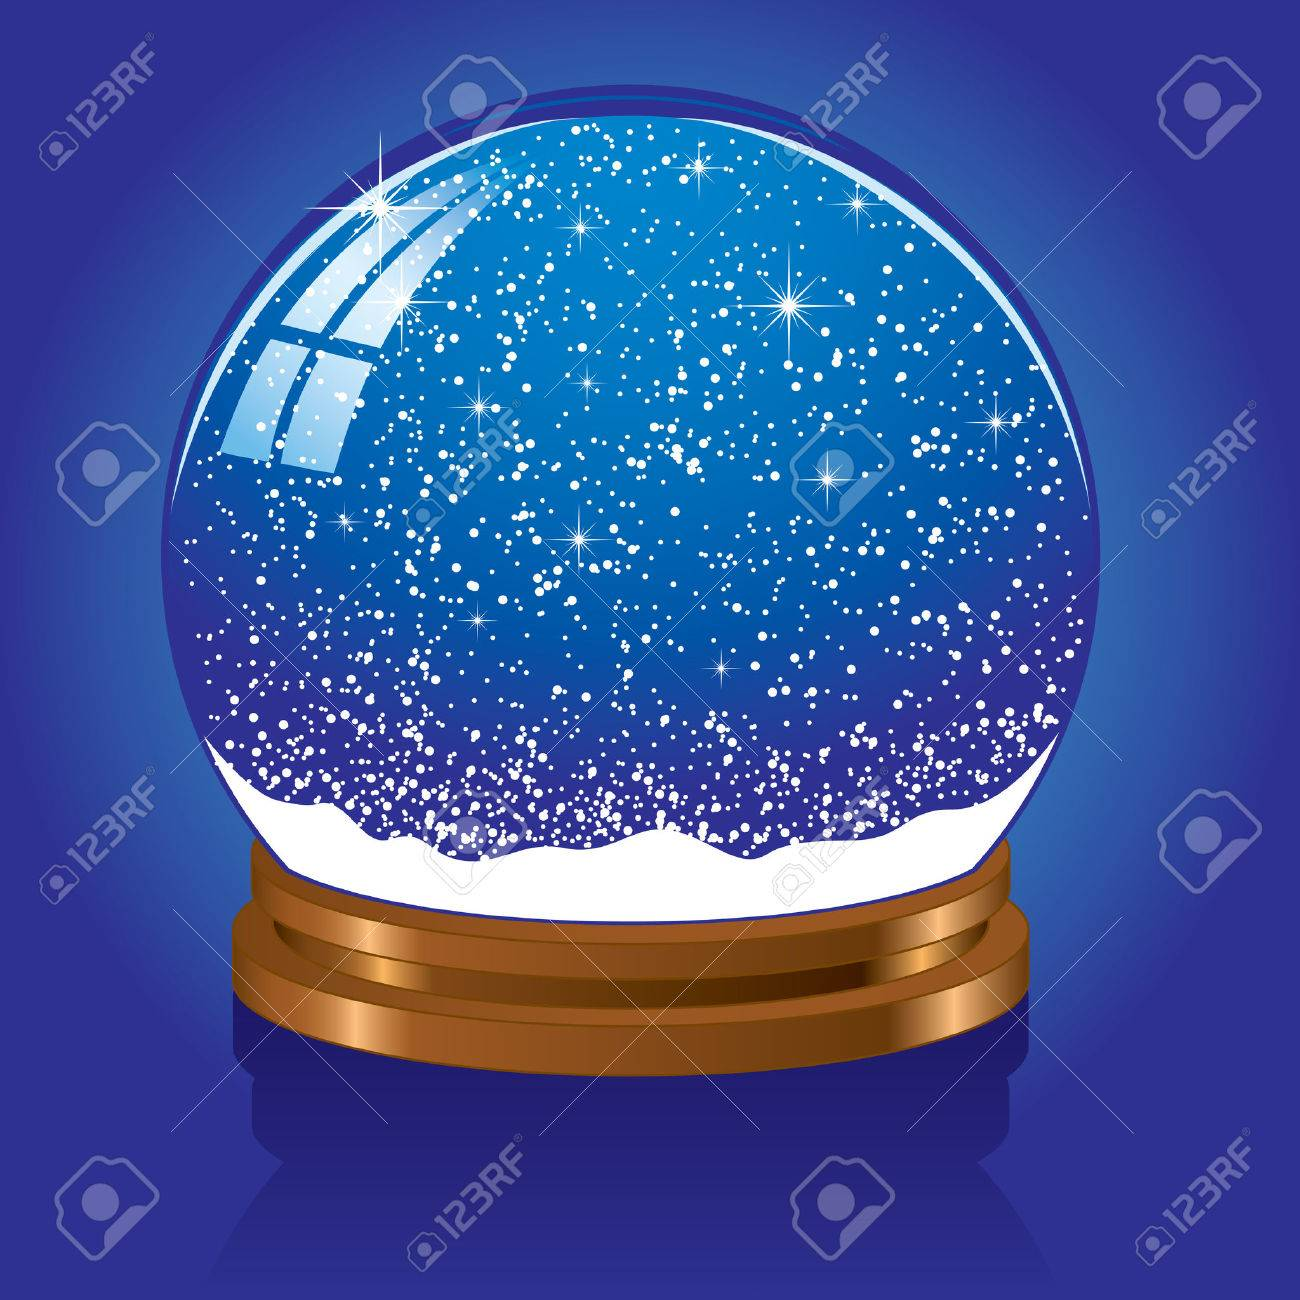 Christmas Snow globe with the falling snow, illustration Stock Vector - 7436920